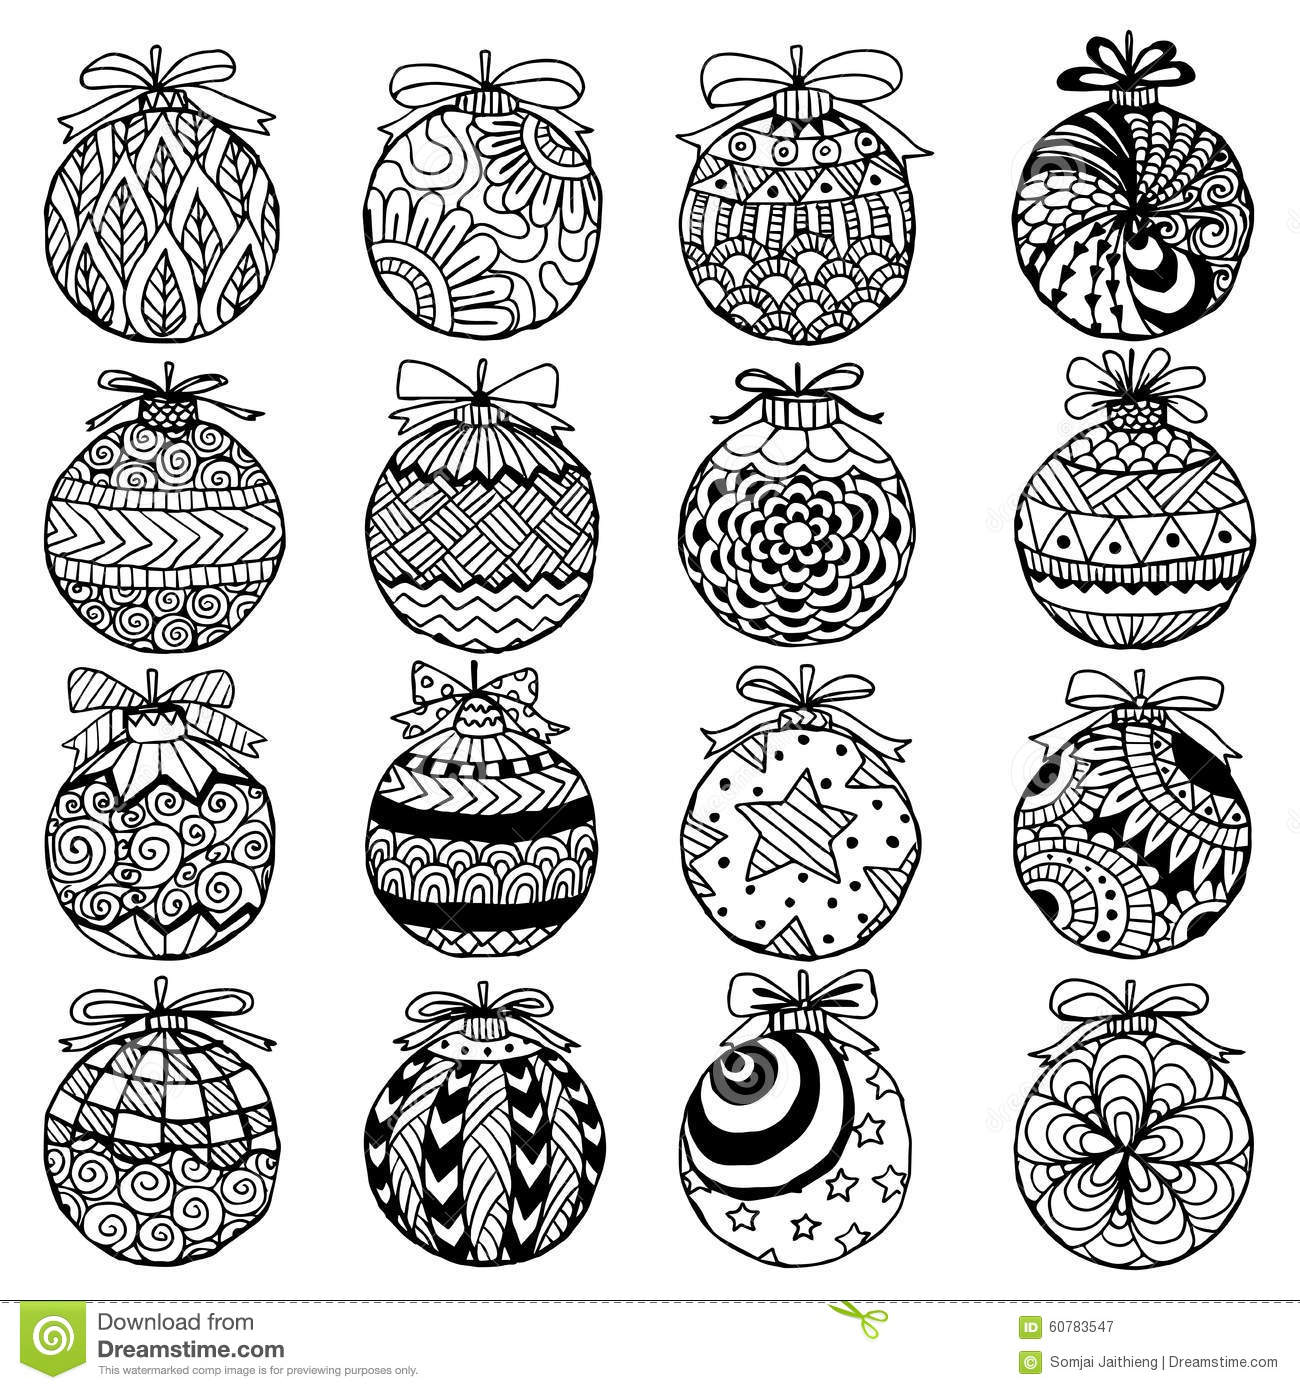 furthermore di9Lqkni7 moreover  besides 12 498 as well  besides 8cARjnLca moreover  together with  in addition  in addition  in addition . on cartoon christmas coloring pages for adults